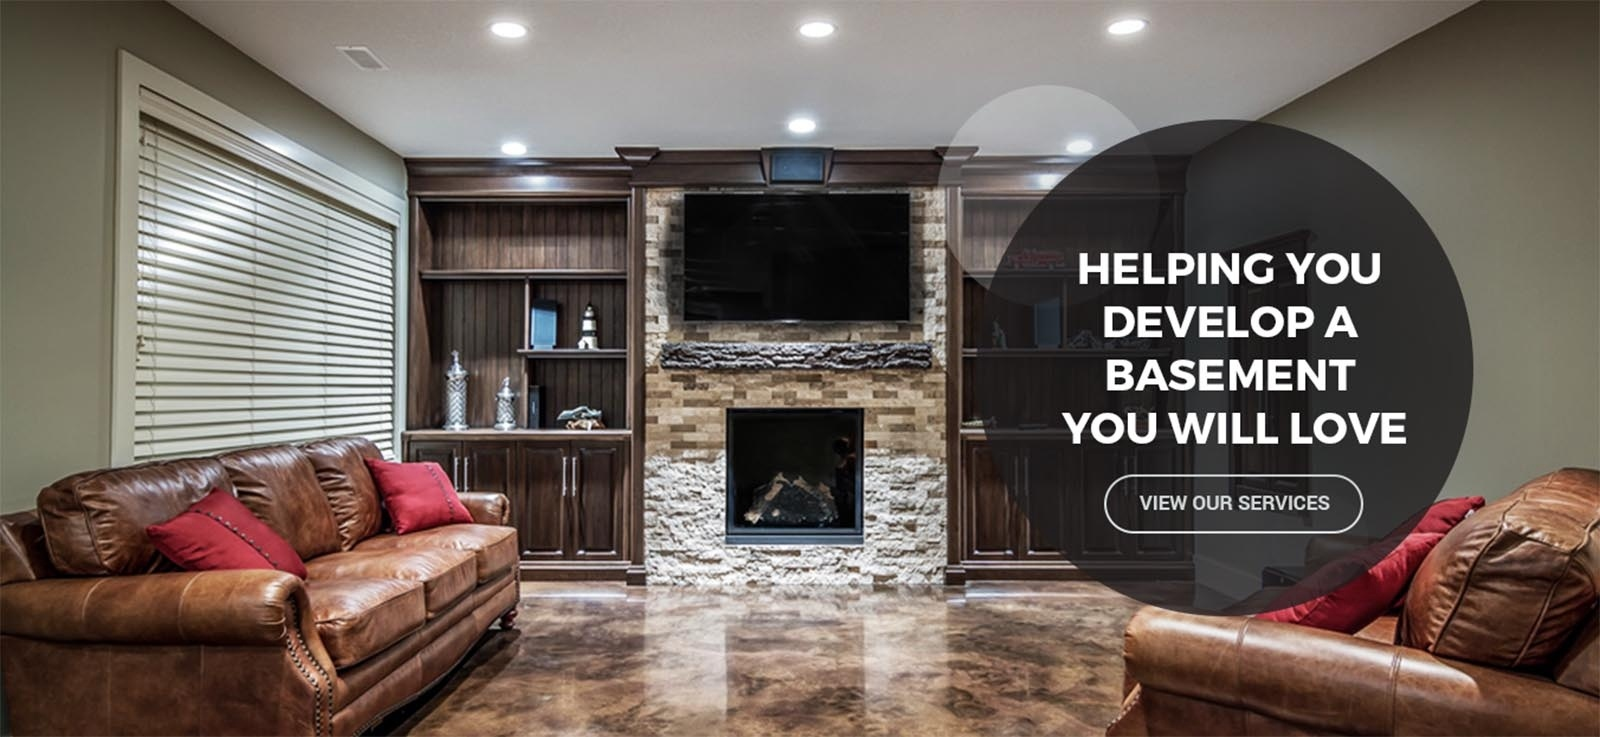 Our Services - Helping You Develop a Basement You will Love